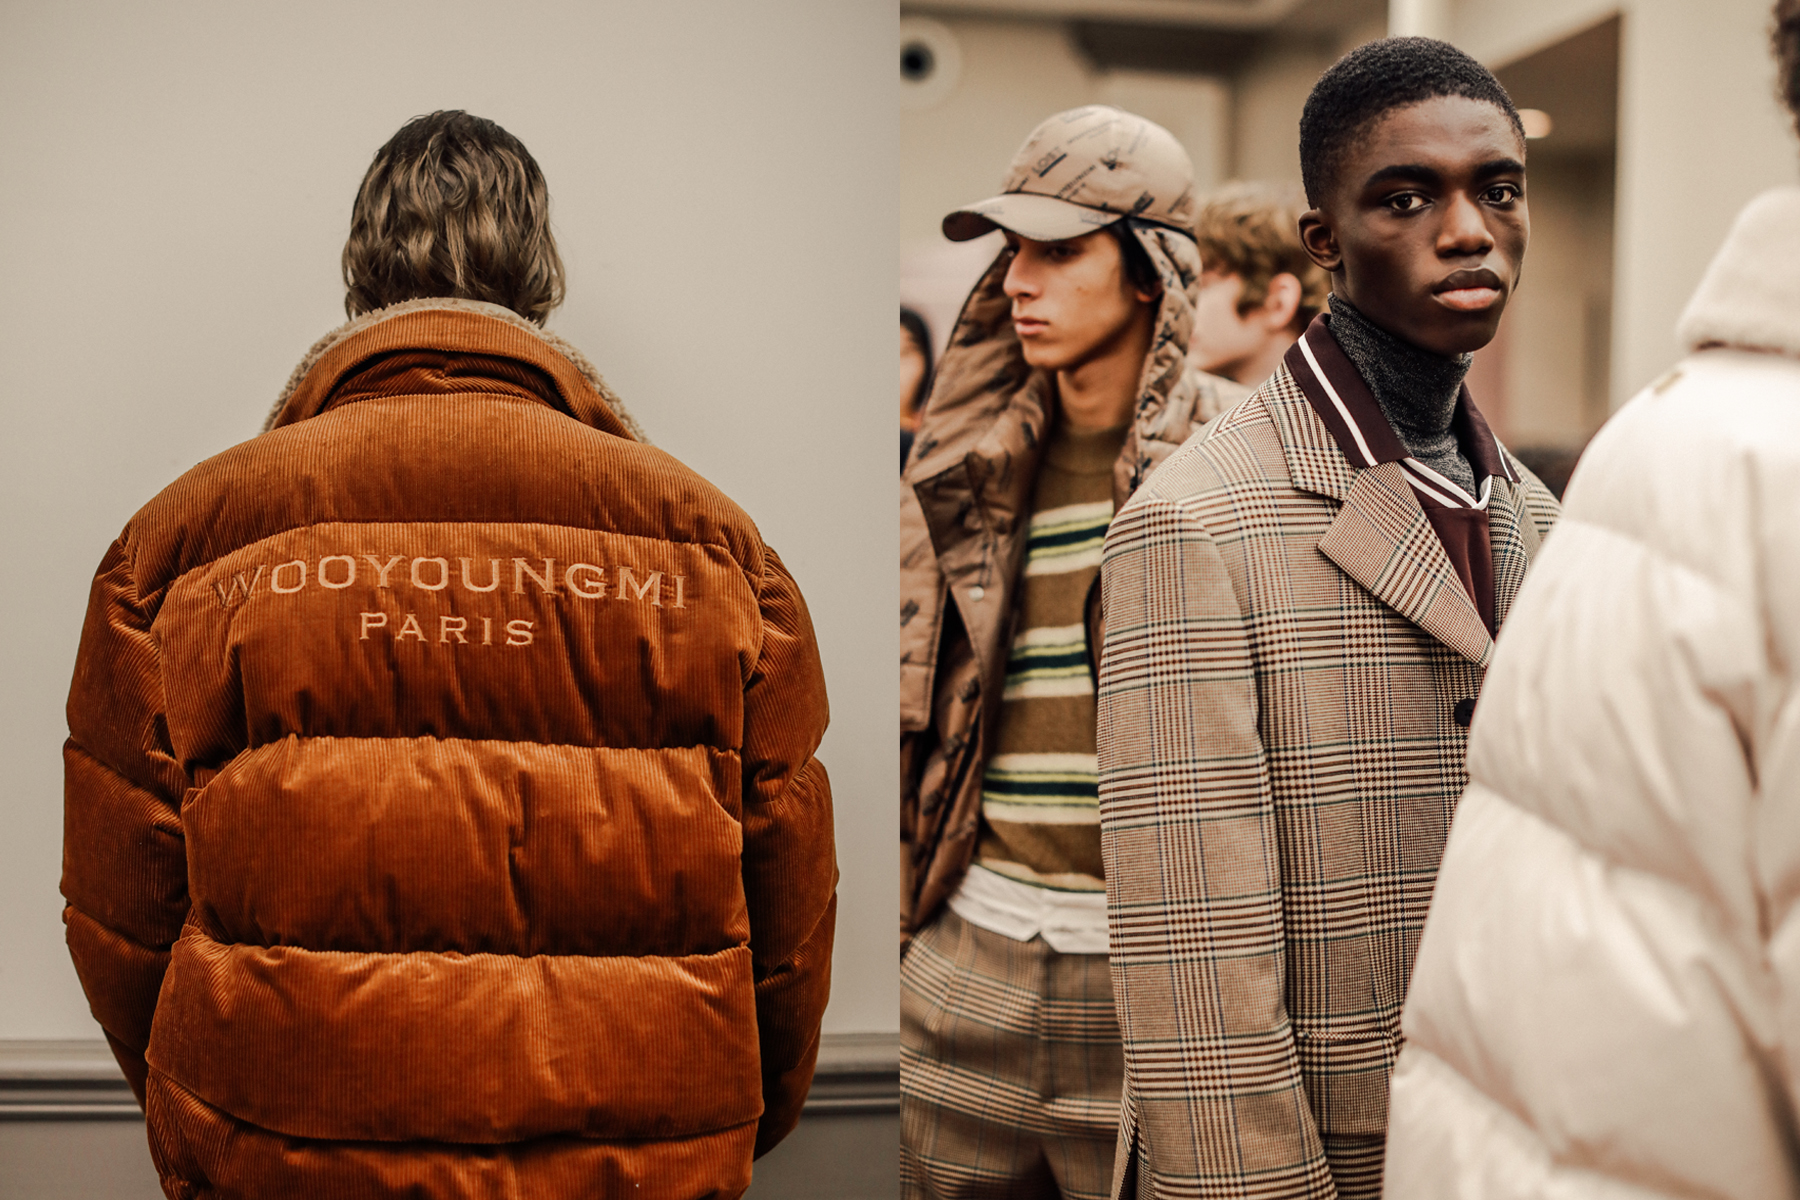 BACKSTAGE AT WOOYOUNGMI FALL/WINTER 2019 SHOW - MORE →